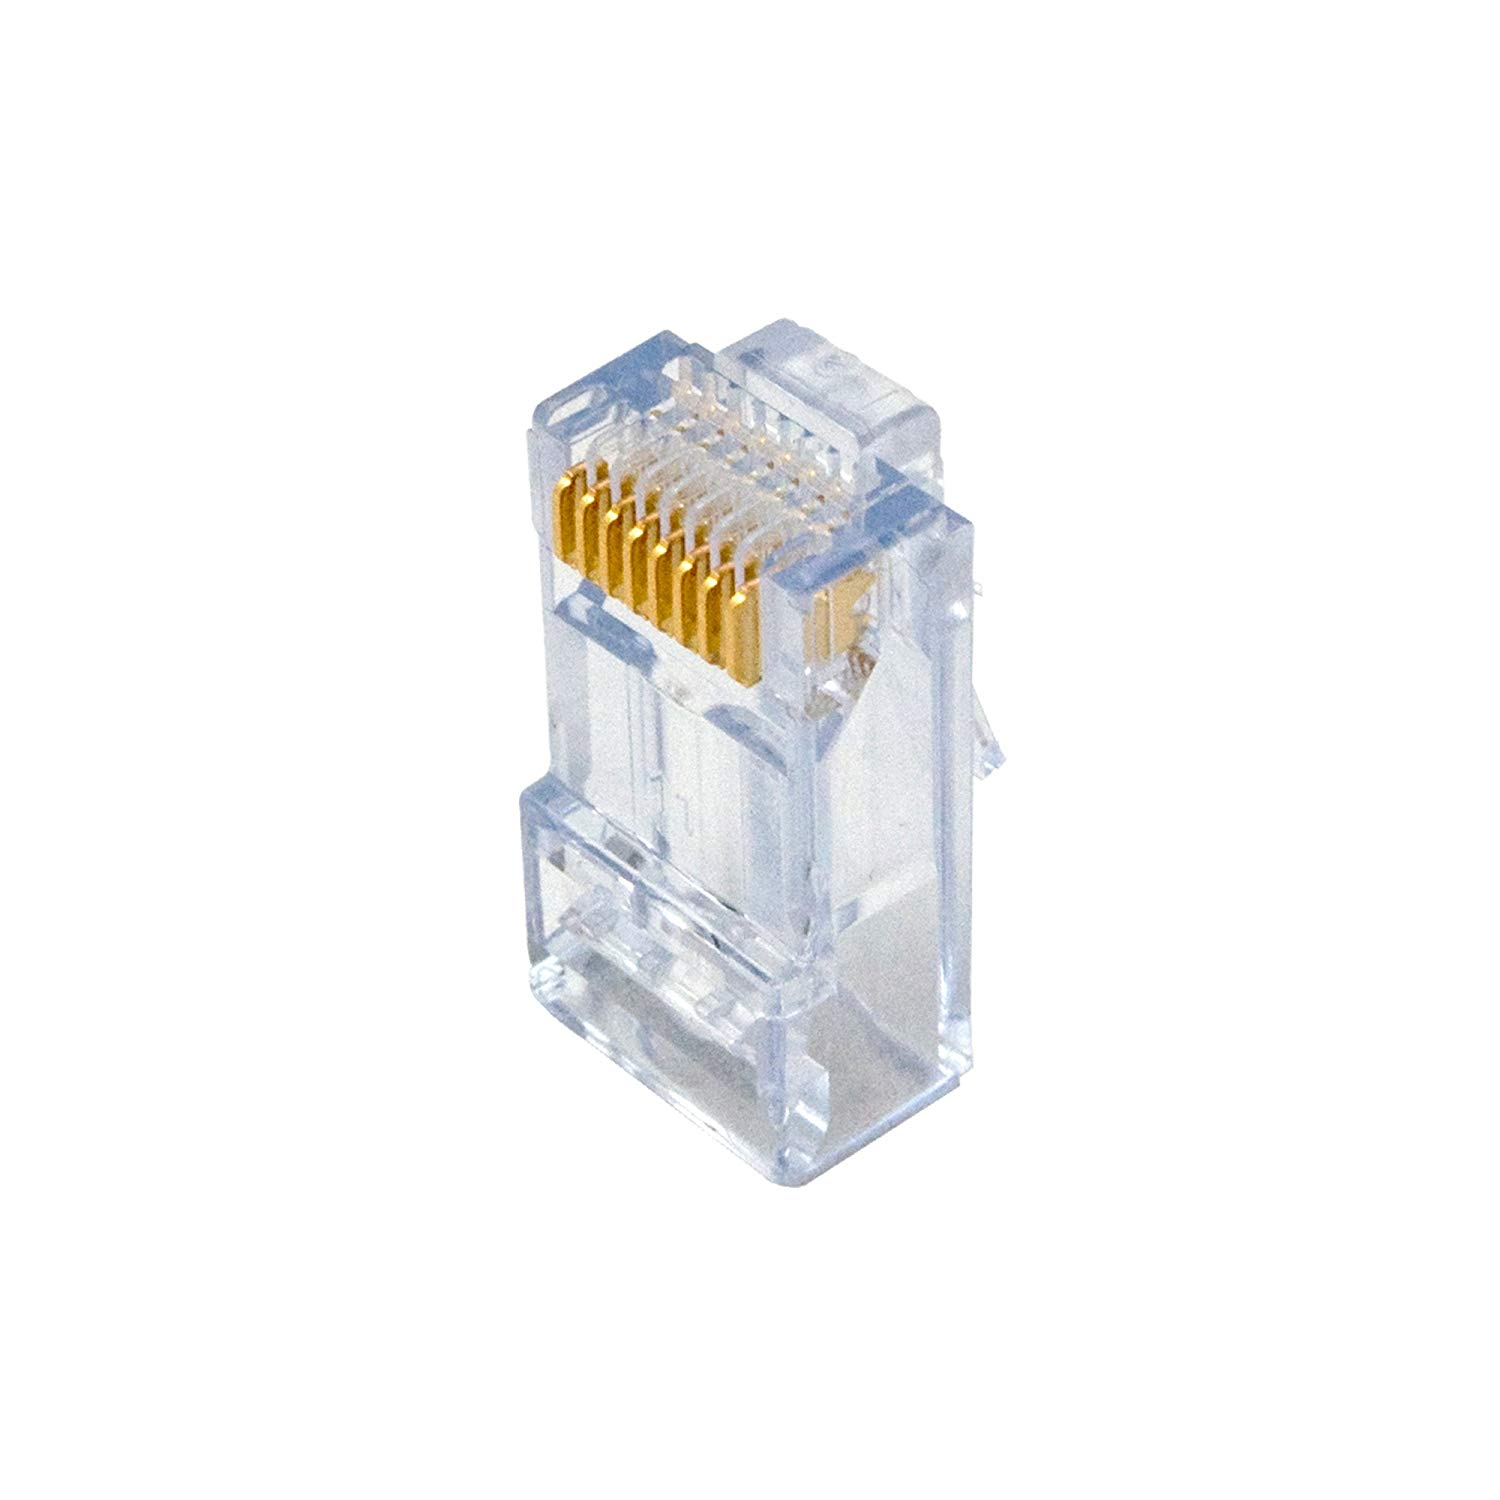 AC345050 ON-Q CAT5E EZ-RJ45 50 PACK ************************* SPECIAL ORDER ITEM NO RETURNS OR SUBJECT TO RESTOCK FEE *************************